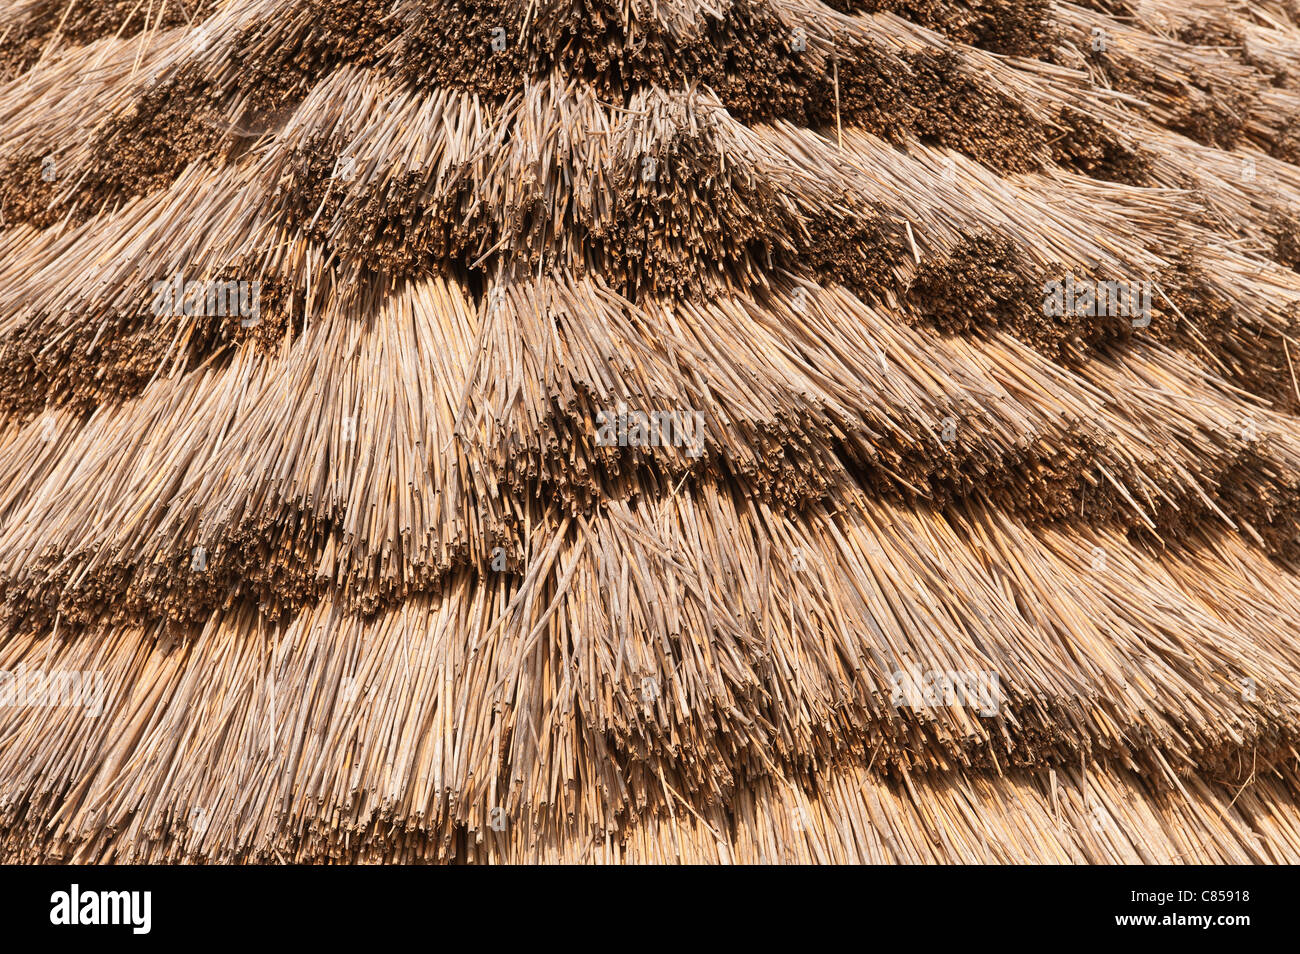 Stock Photo   Thatched Roof And Bronze Age Style Dwelling With Timber And  Mud Walls Reed With Straw Roof